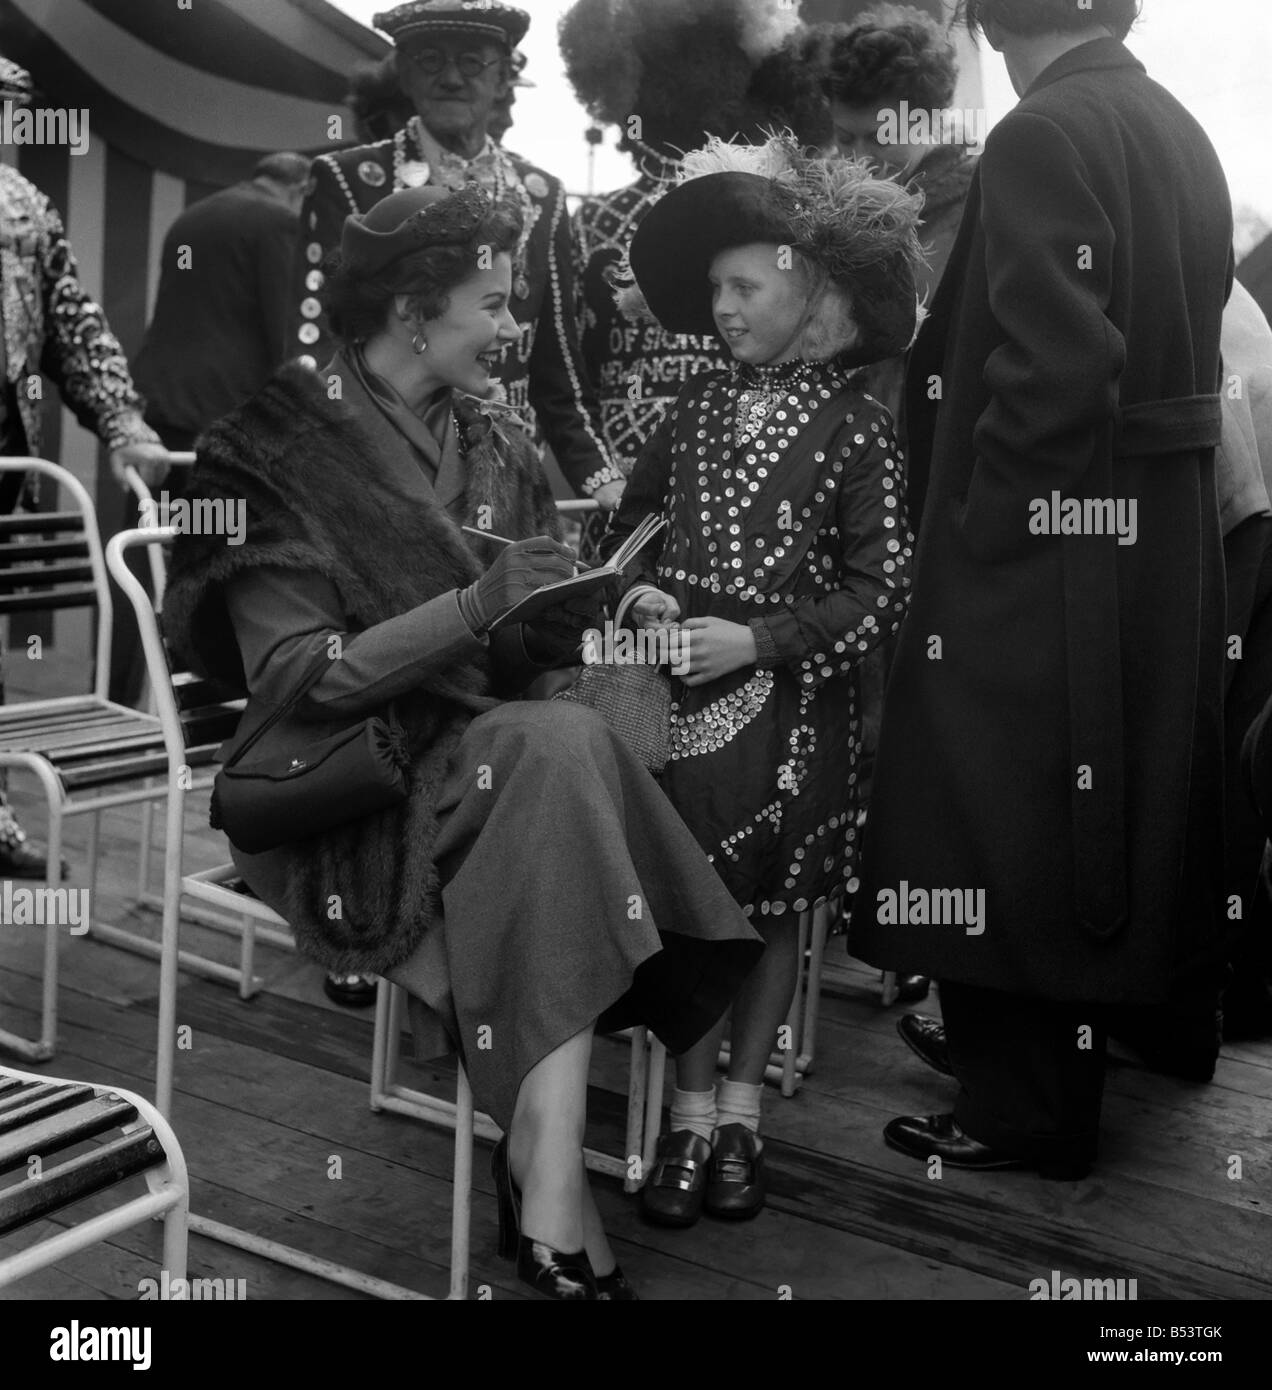 Costers: Pearly Kings and Queens seen here at the Festival Pleasure Gardens in Battersea. May 1953 D2612-001 - Stock Image